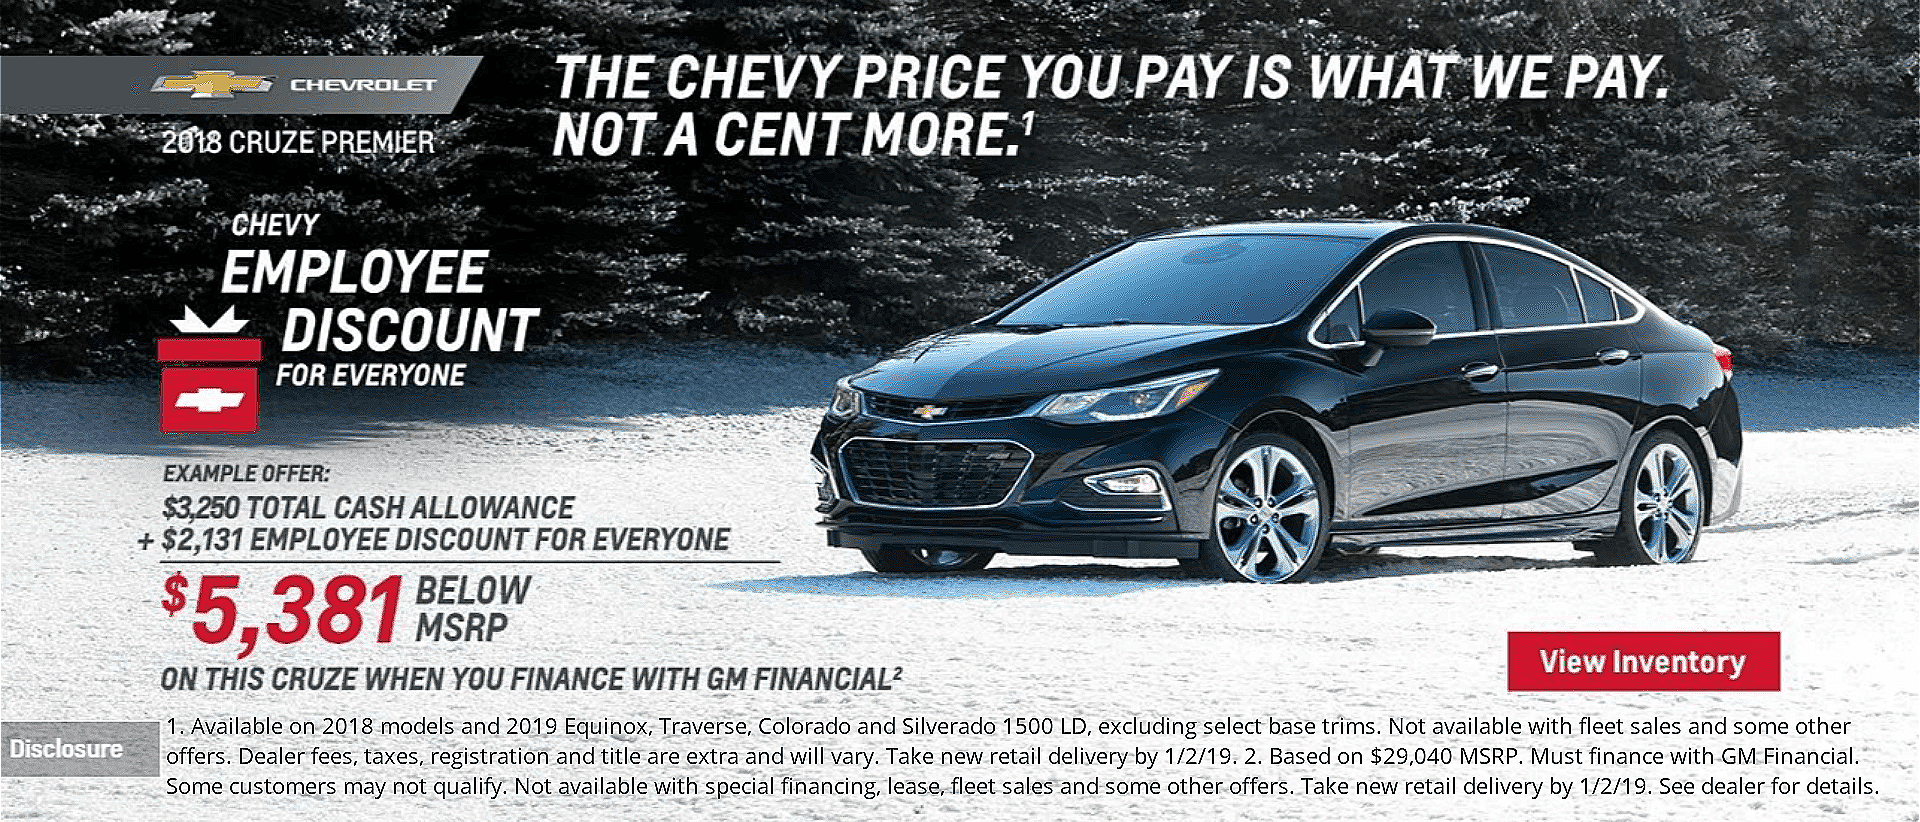 Chevy Employee Discount for Everyone at Dimmitt Chevrolet in Clearwater, FL.